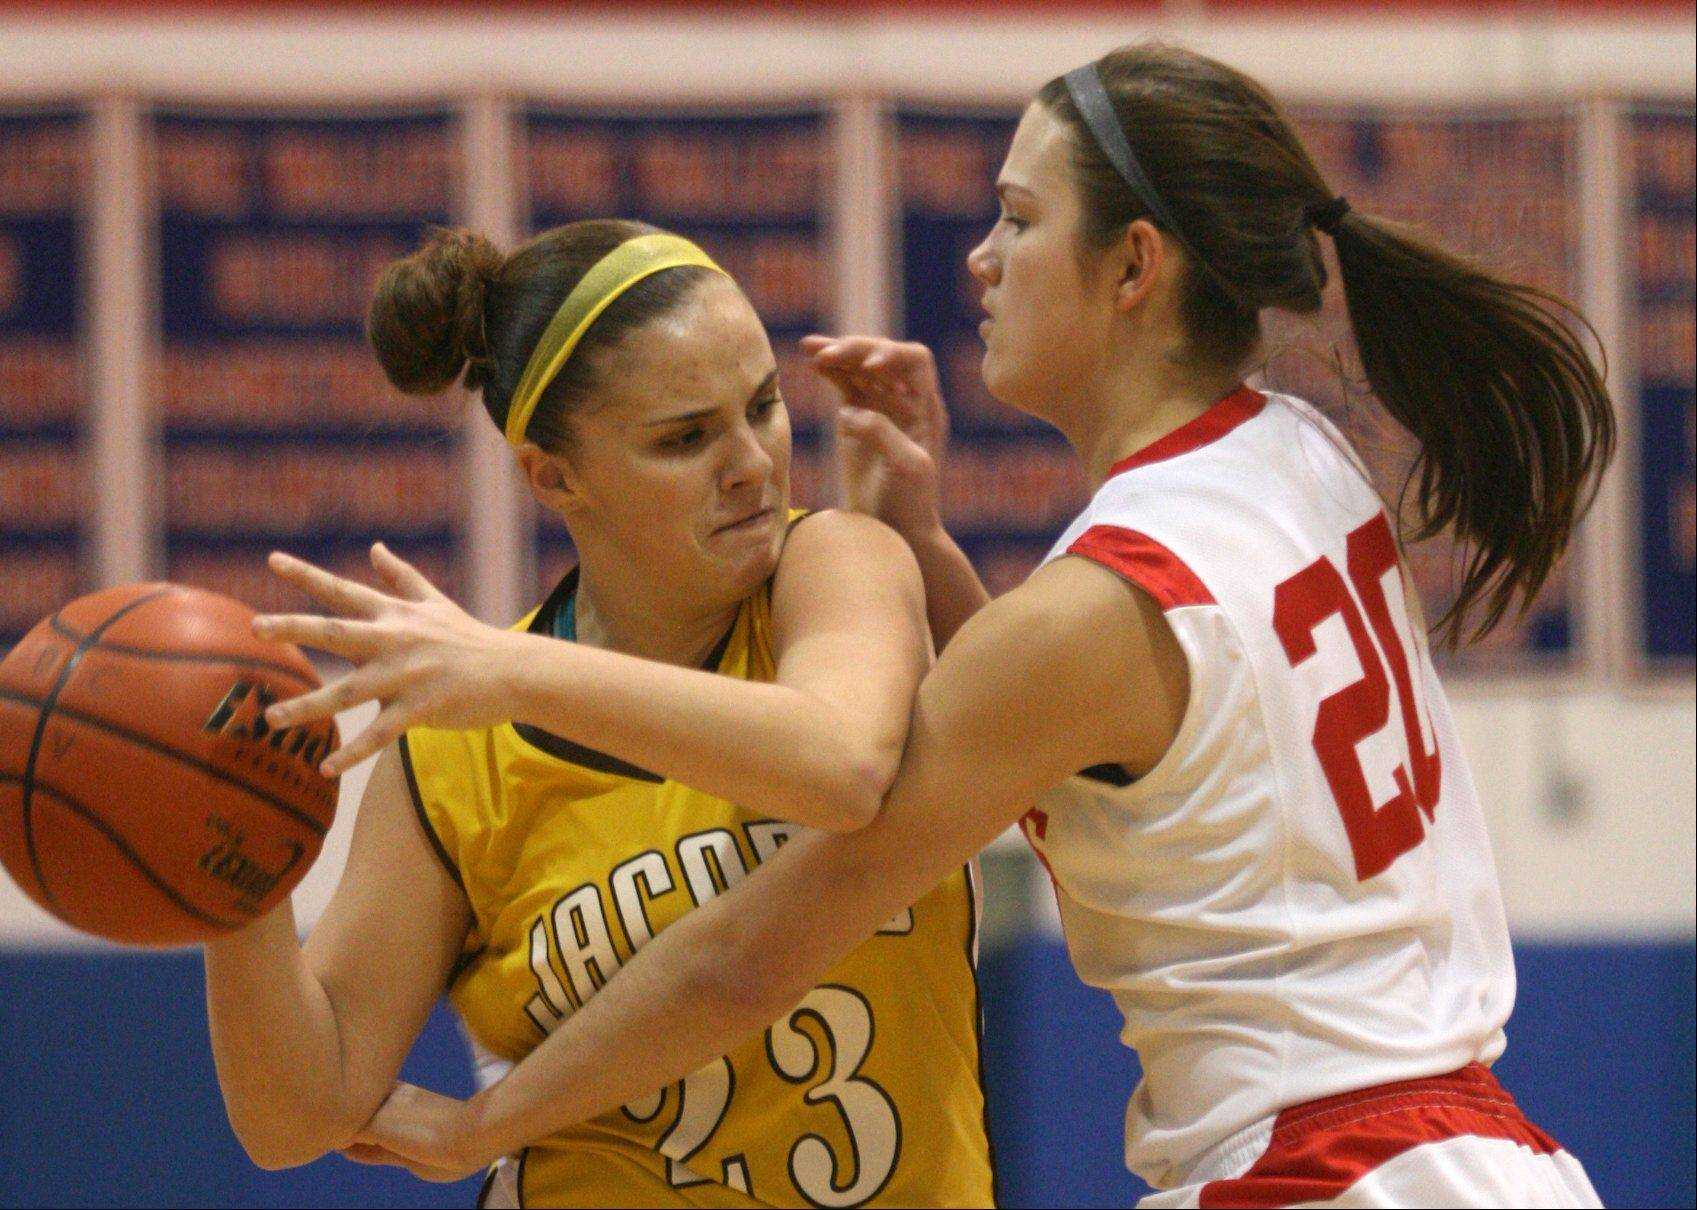 Jacobs� Tiffany Frighetto, left, tries to get past Dundee-Crown�s Franchesca Cavallaro.